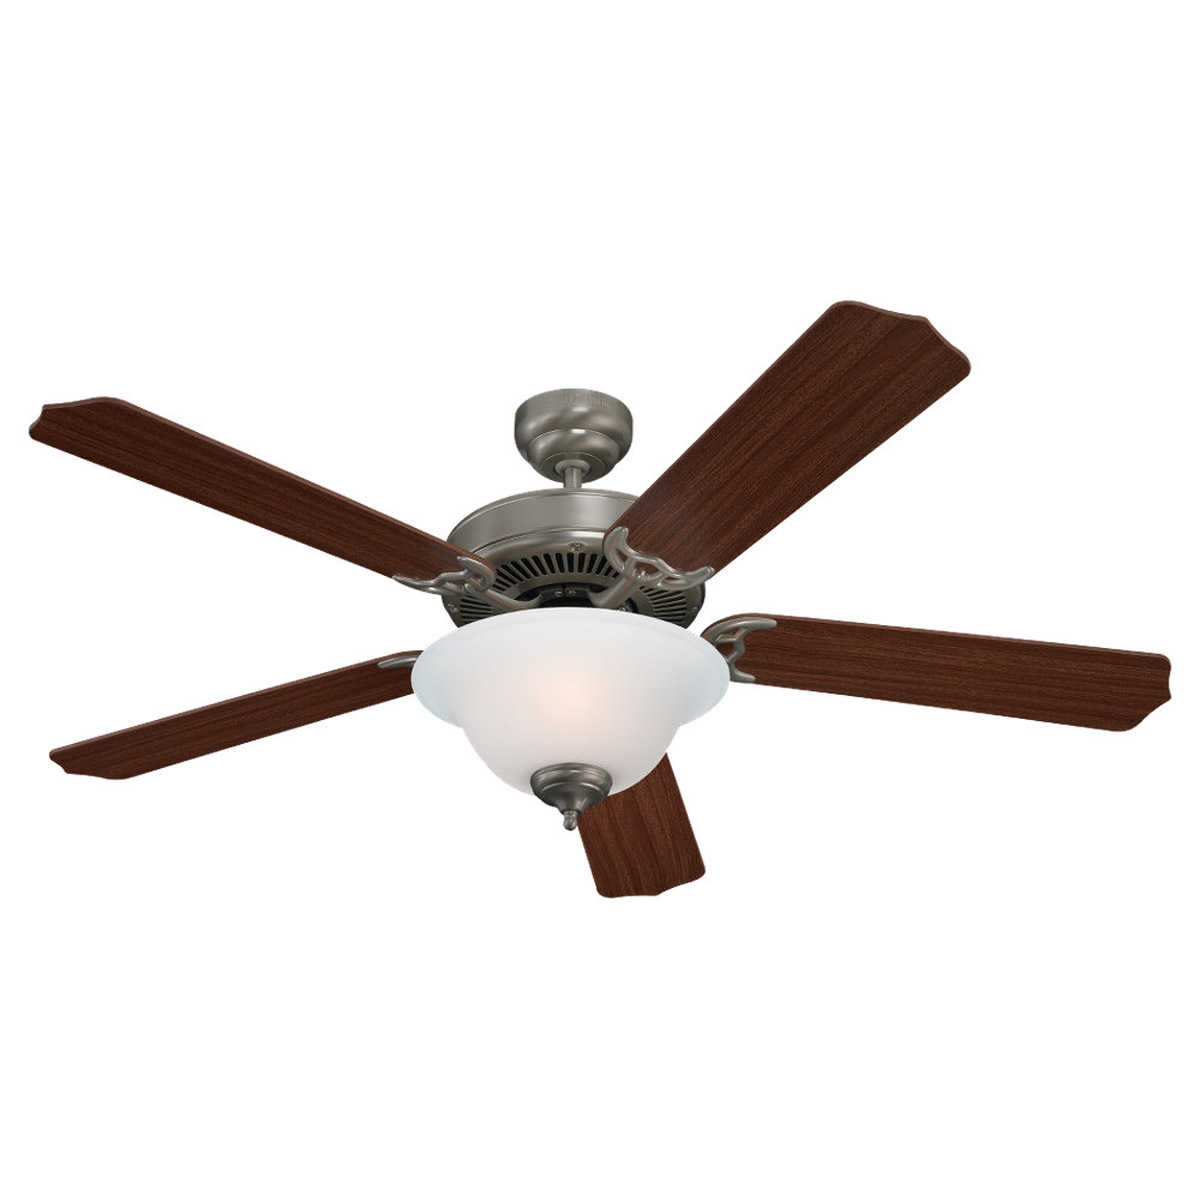 Sea Gull Lighting 2 Light 52in Quality Max Plus Ceiling Fan in Brushed Nickel 15030BLE-962 photo